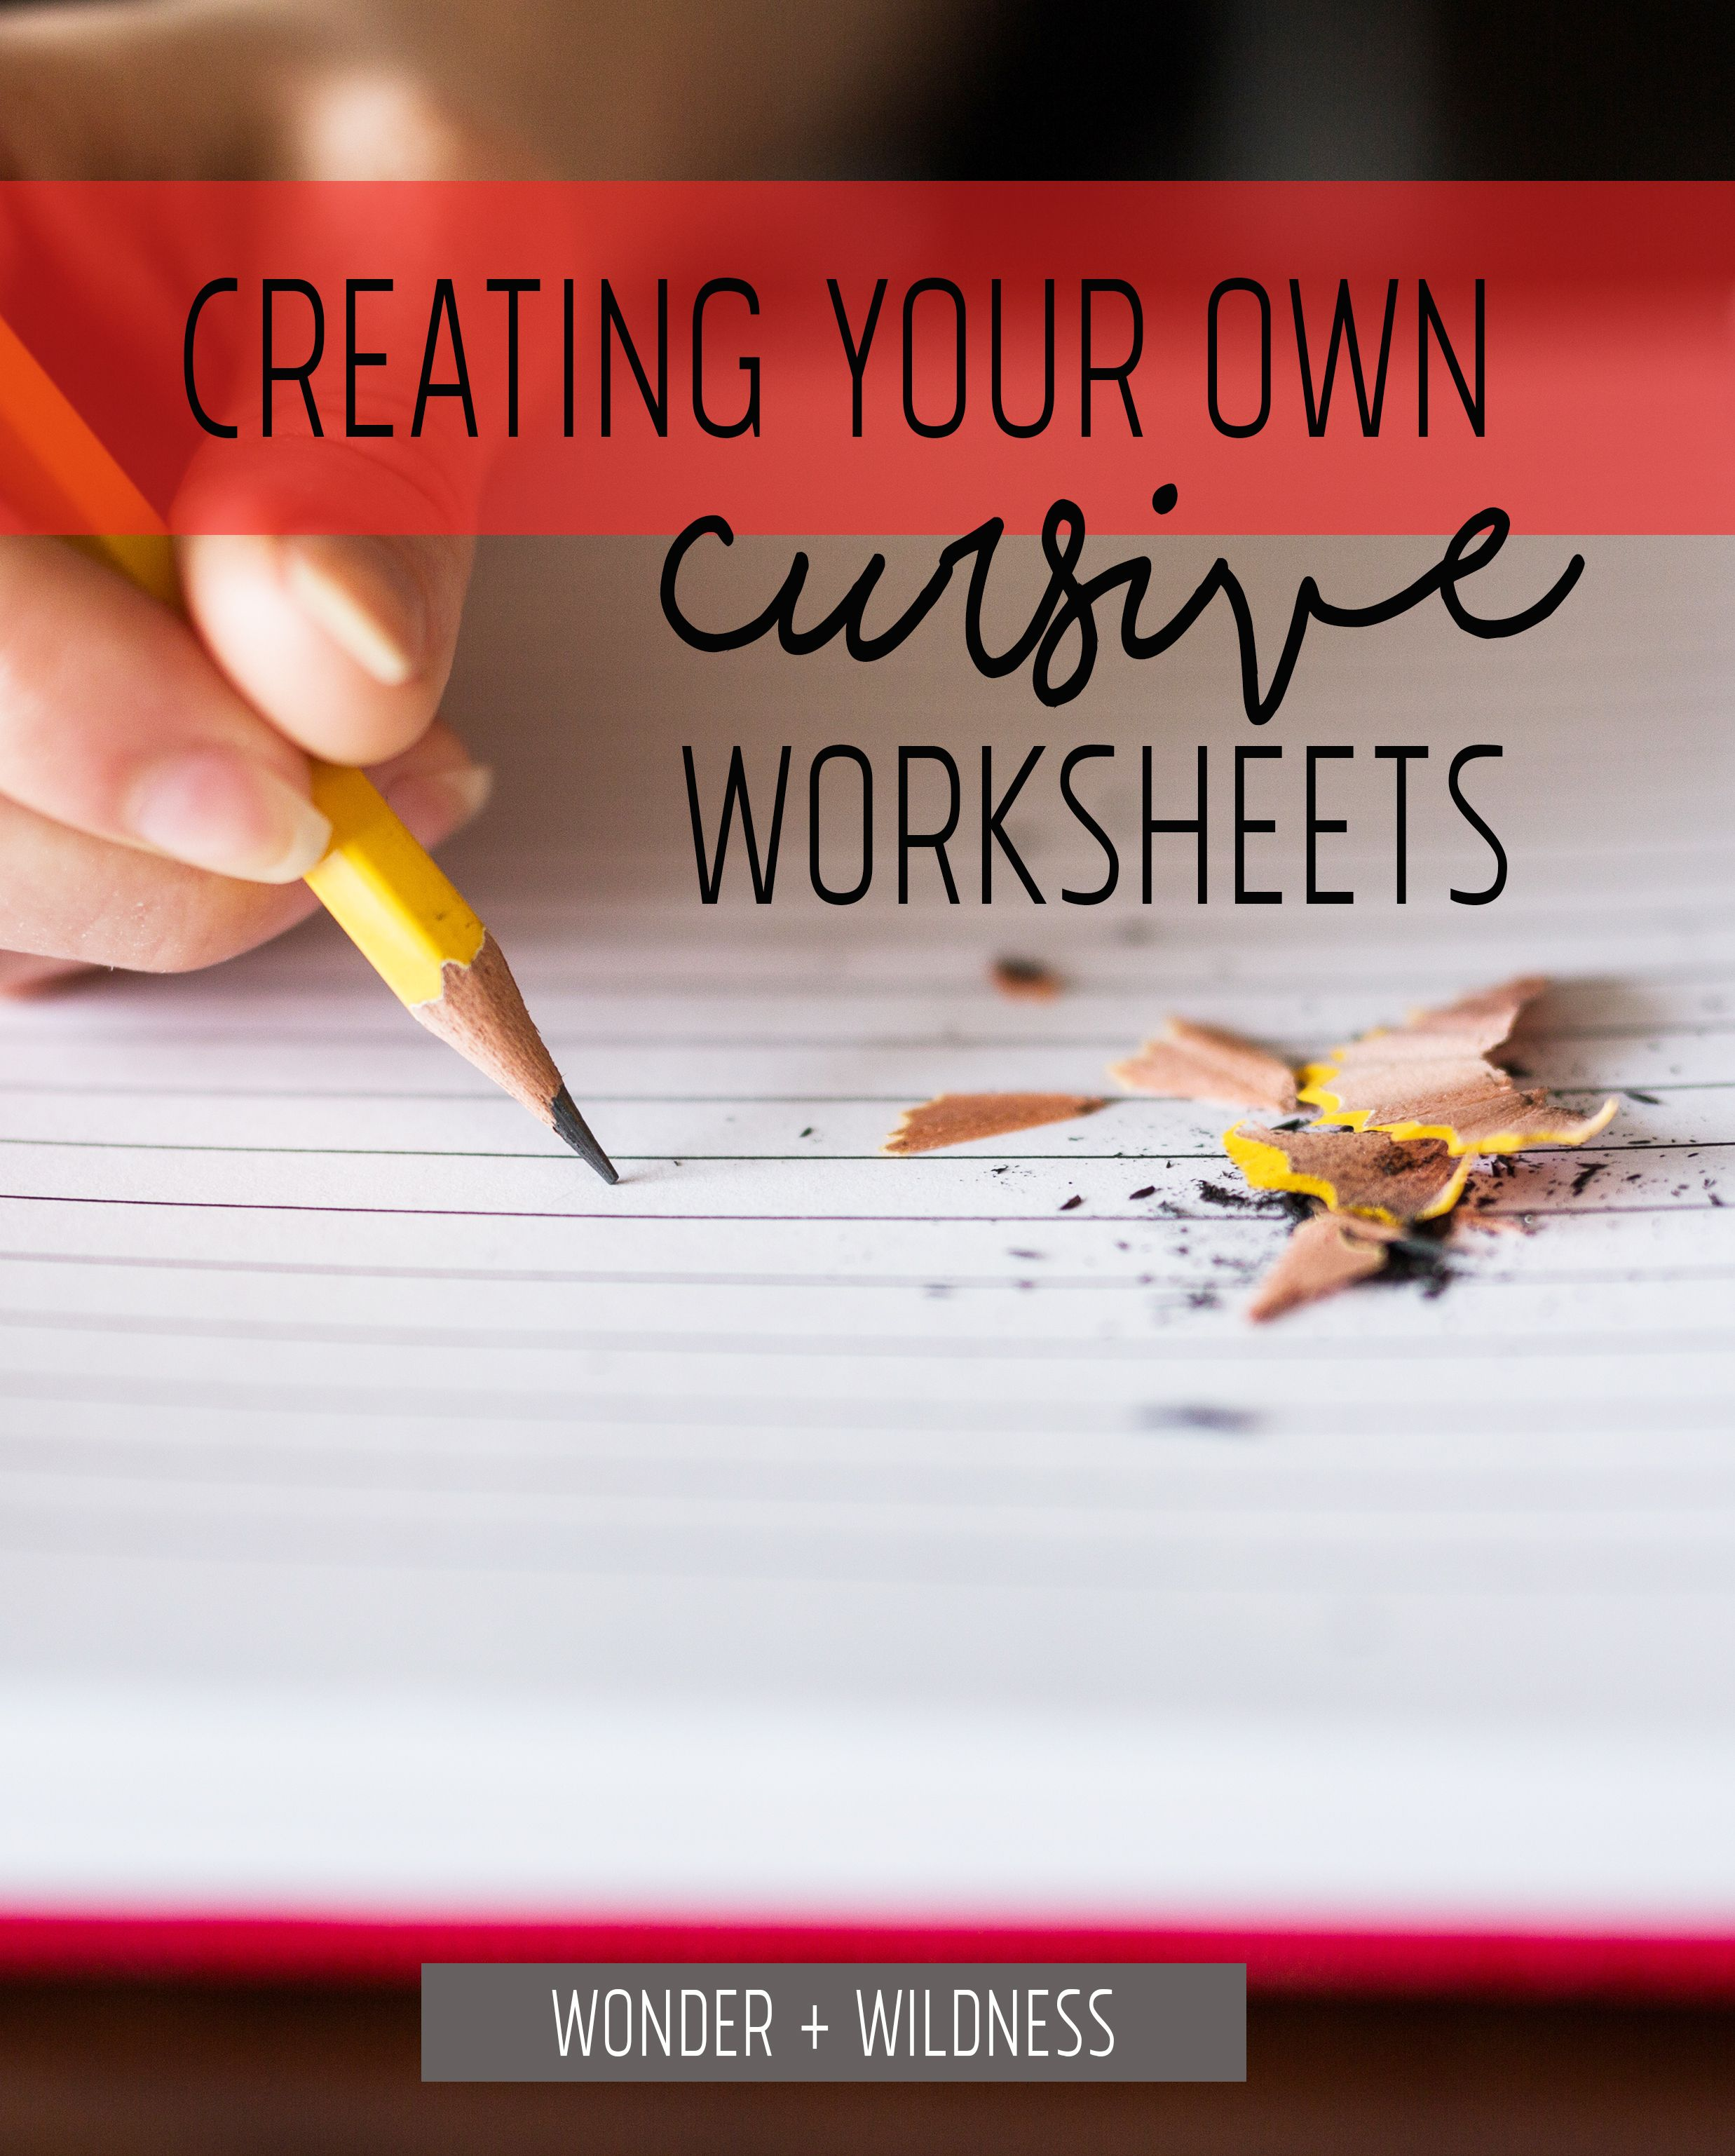 Creating Your Own Cursive Worksheets Is A Quick And Simple